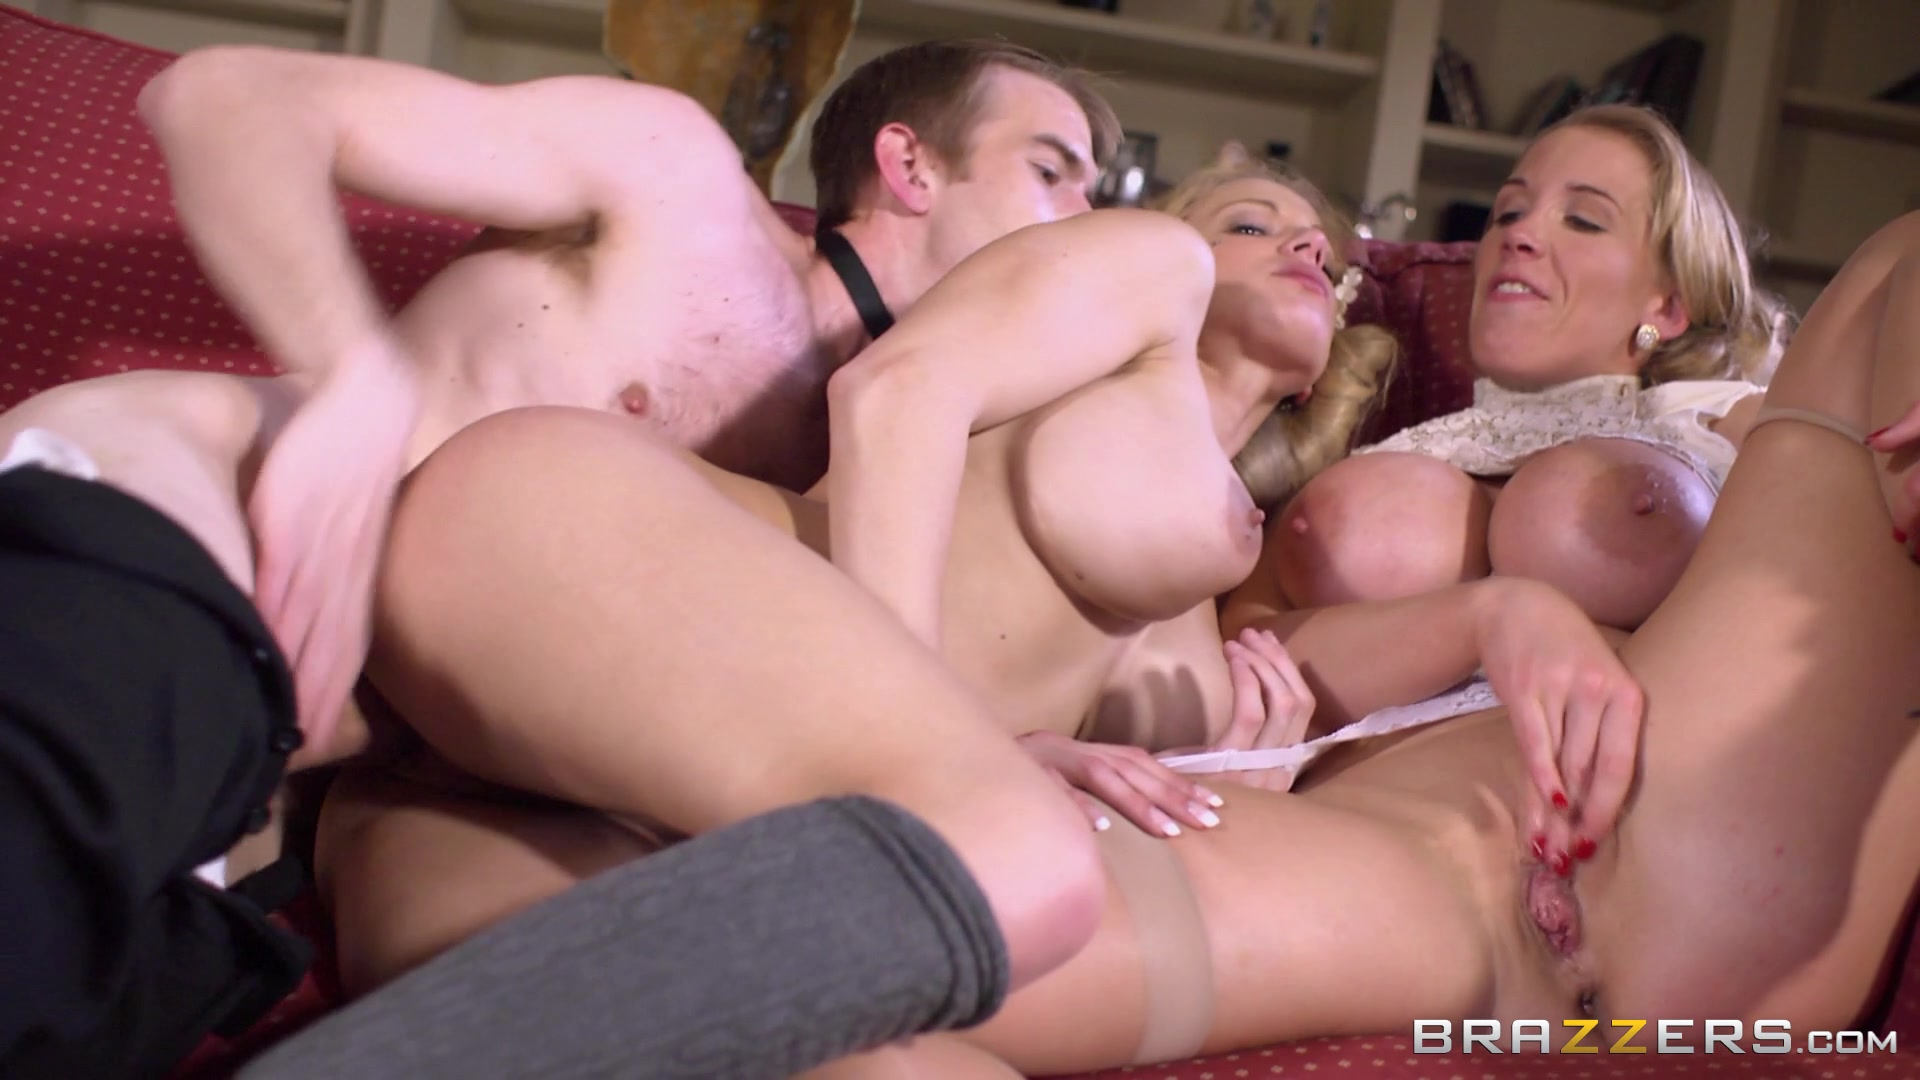 Busty Blondes Rebecca More and Lou Lou Eat Pussy and Share His Big Dick Starring: Lou Lou Rebecca More Length: 39 min